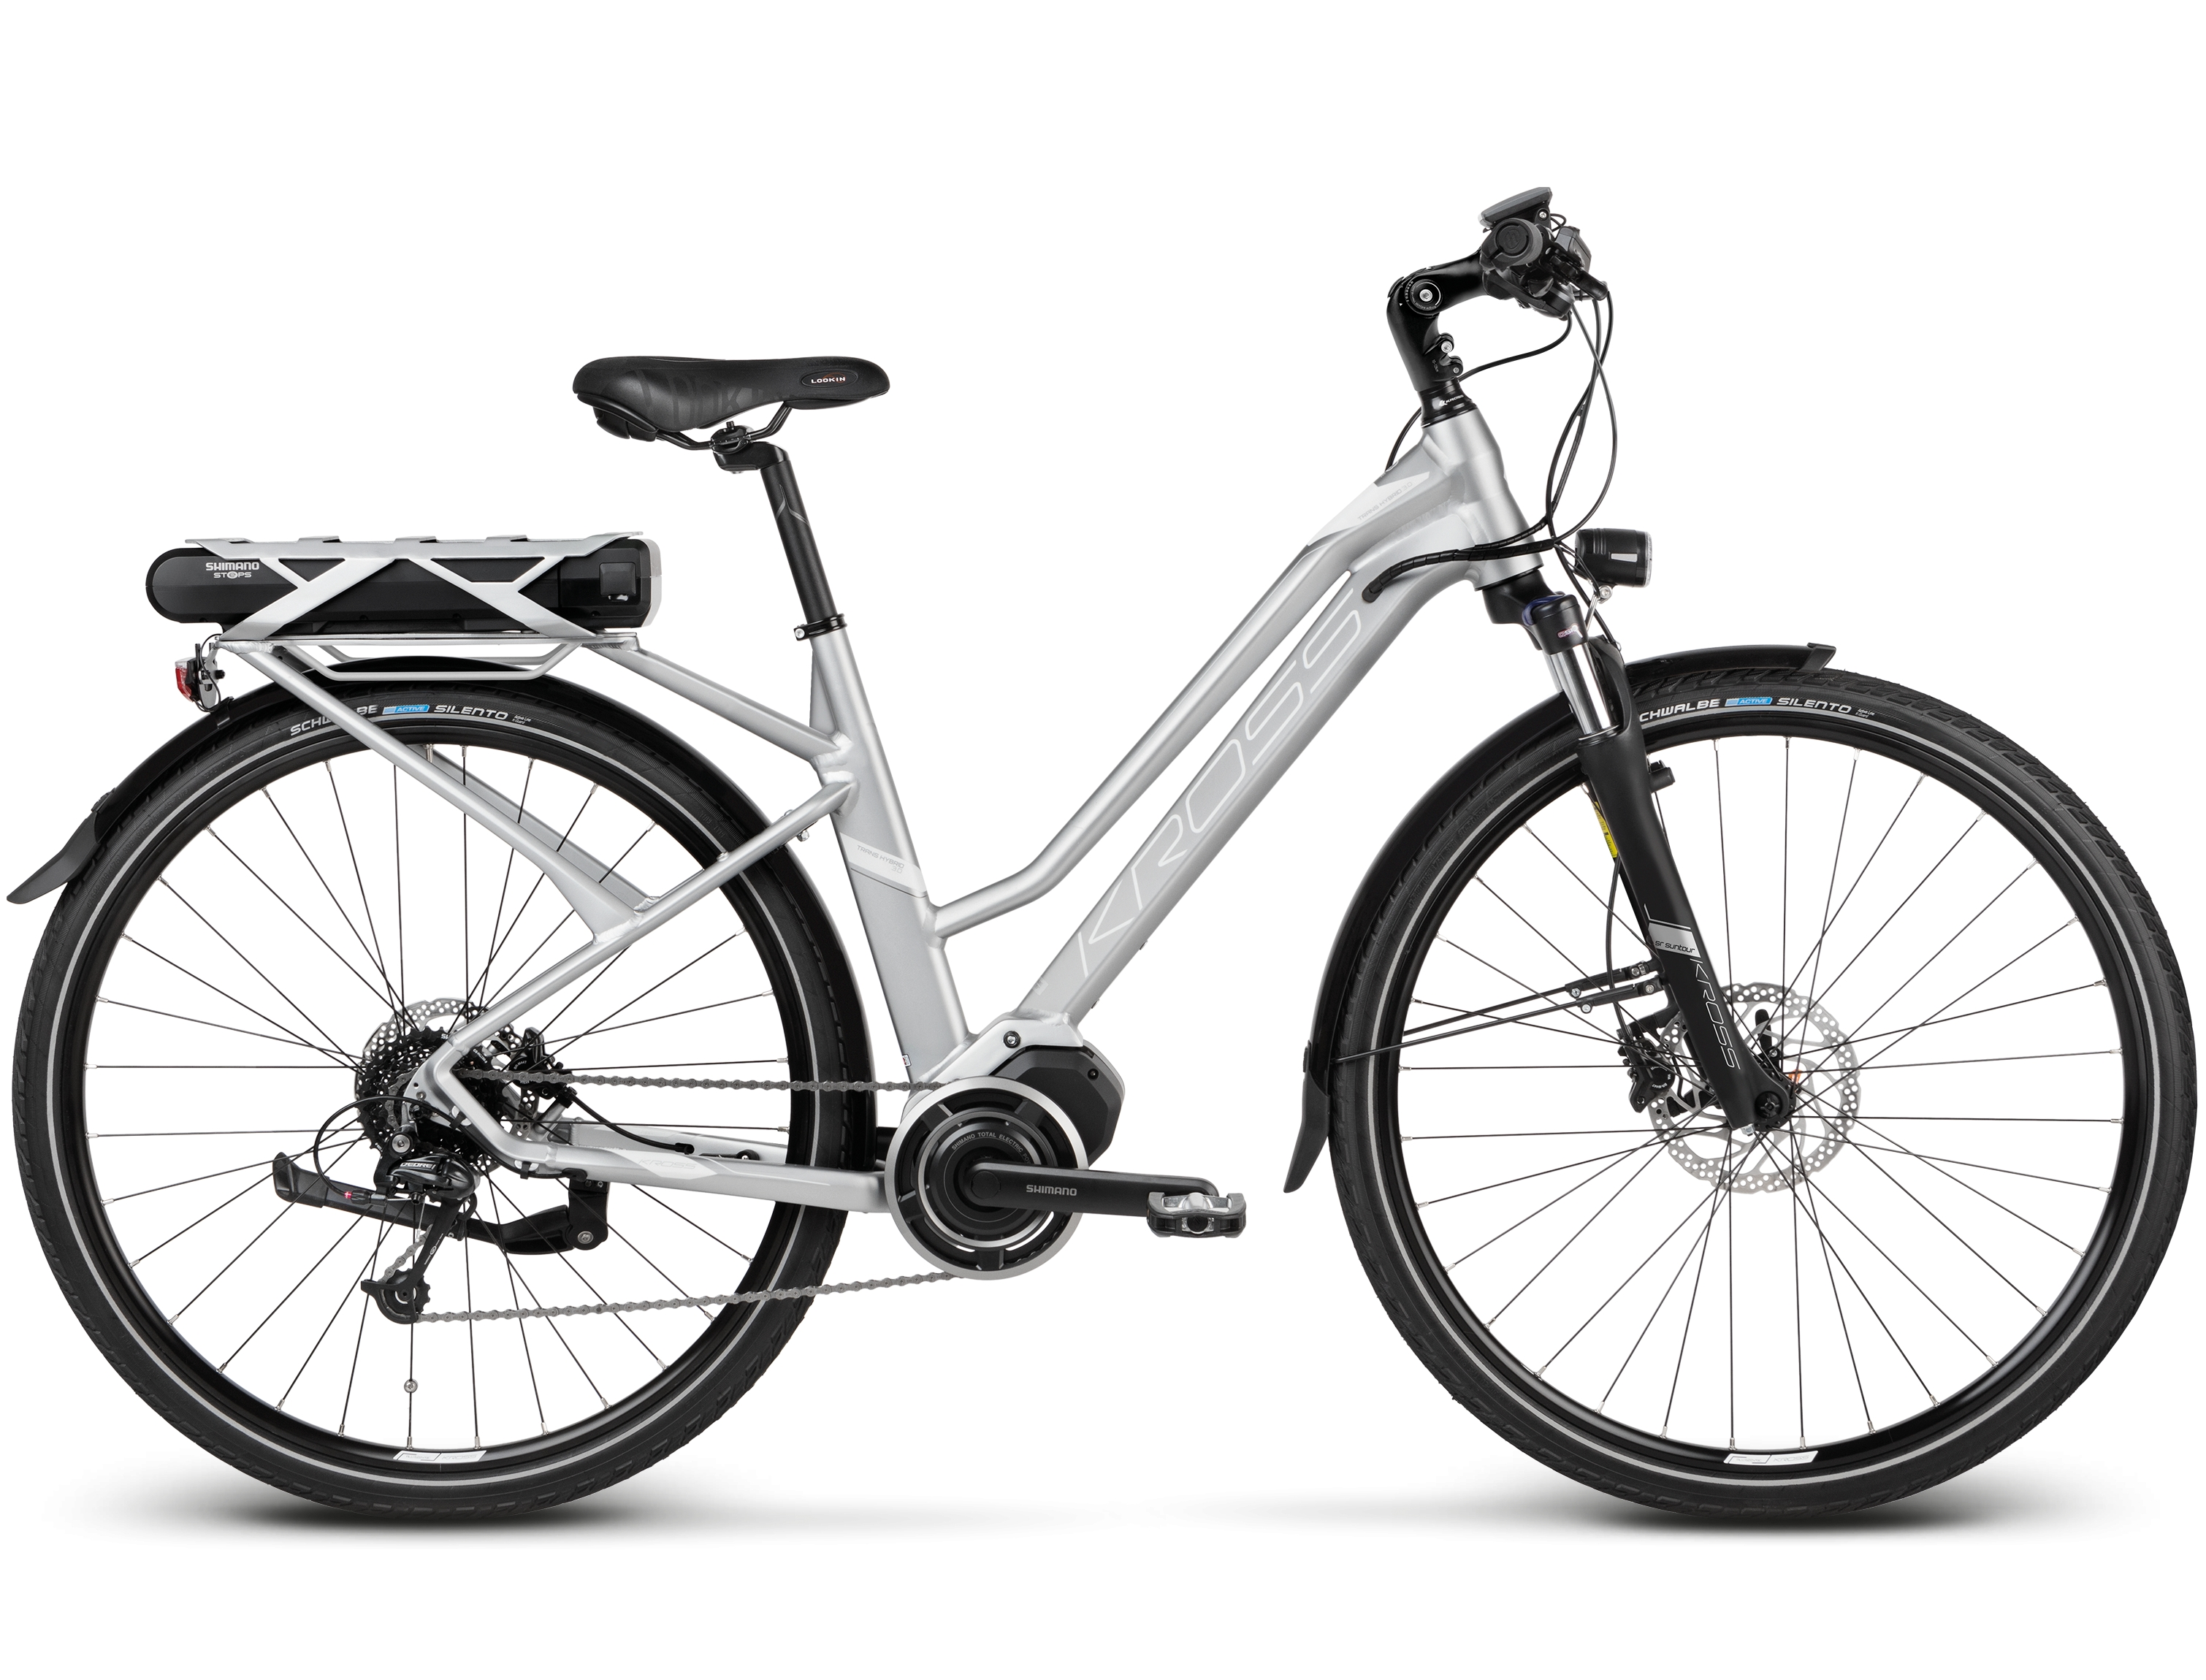 //kross.pl/sites/default/files/styles/bike_zoom/public/bikes/2018/ebike/trans_hybrid_3_0_silver_white_matte.png